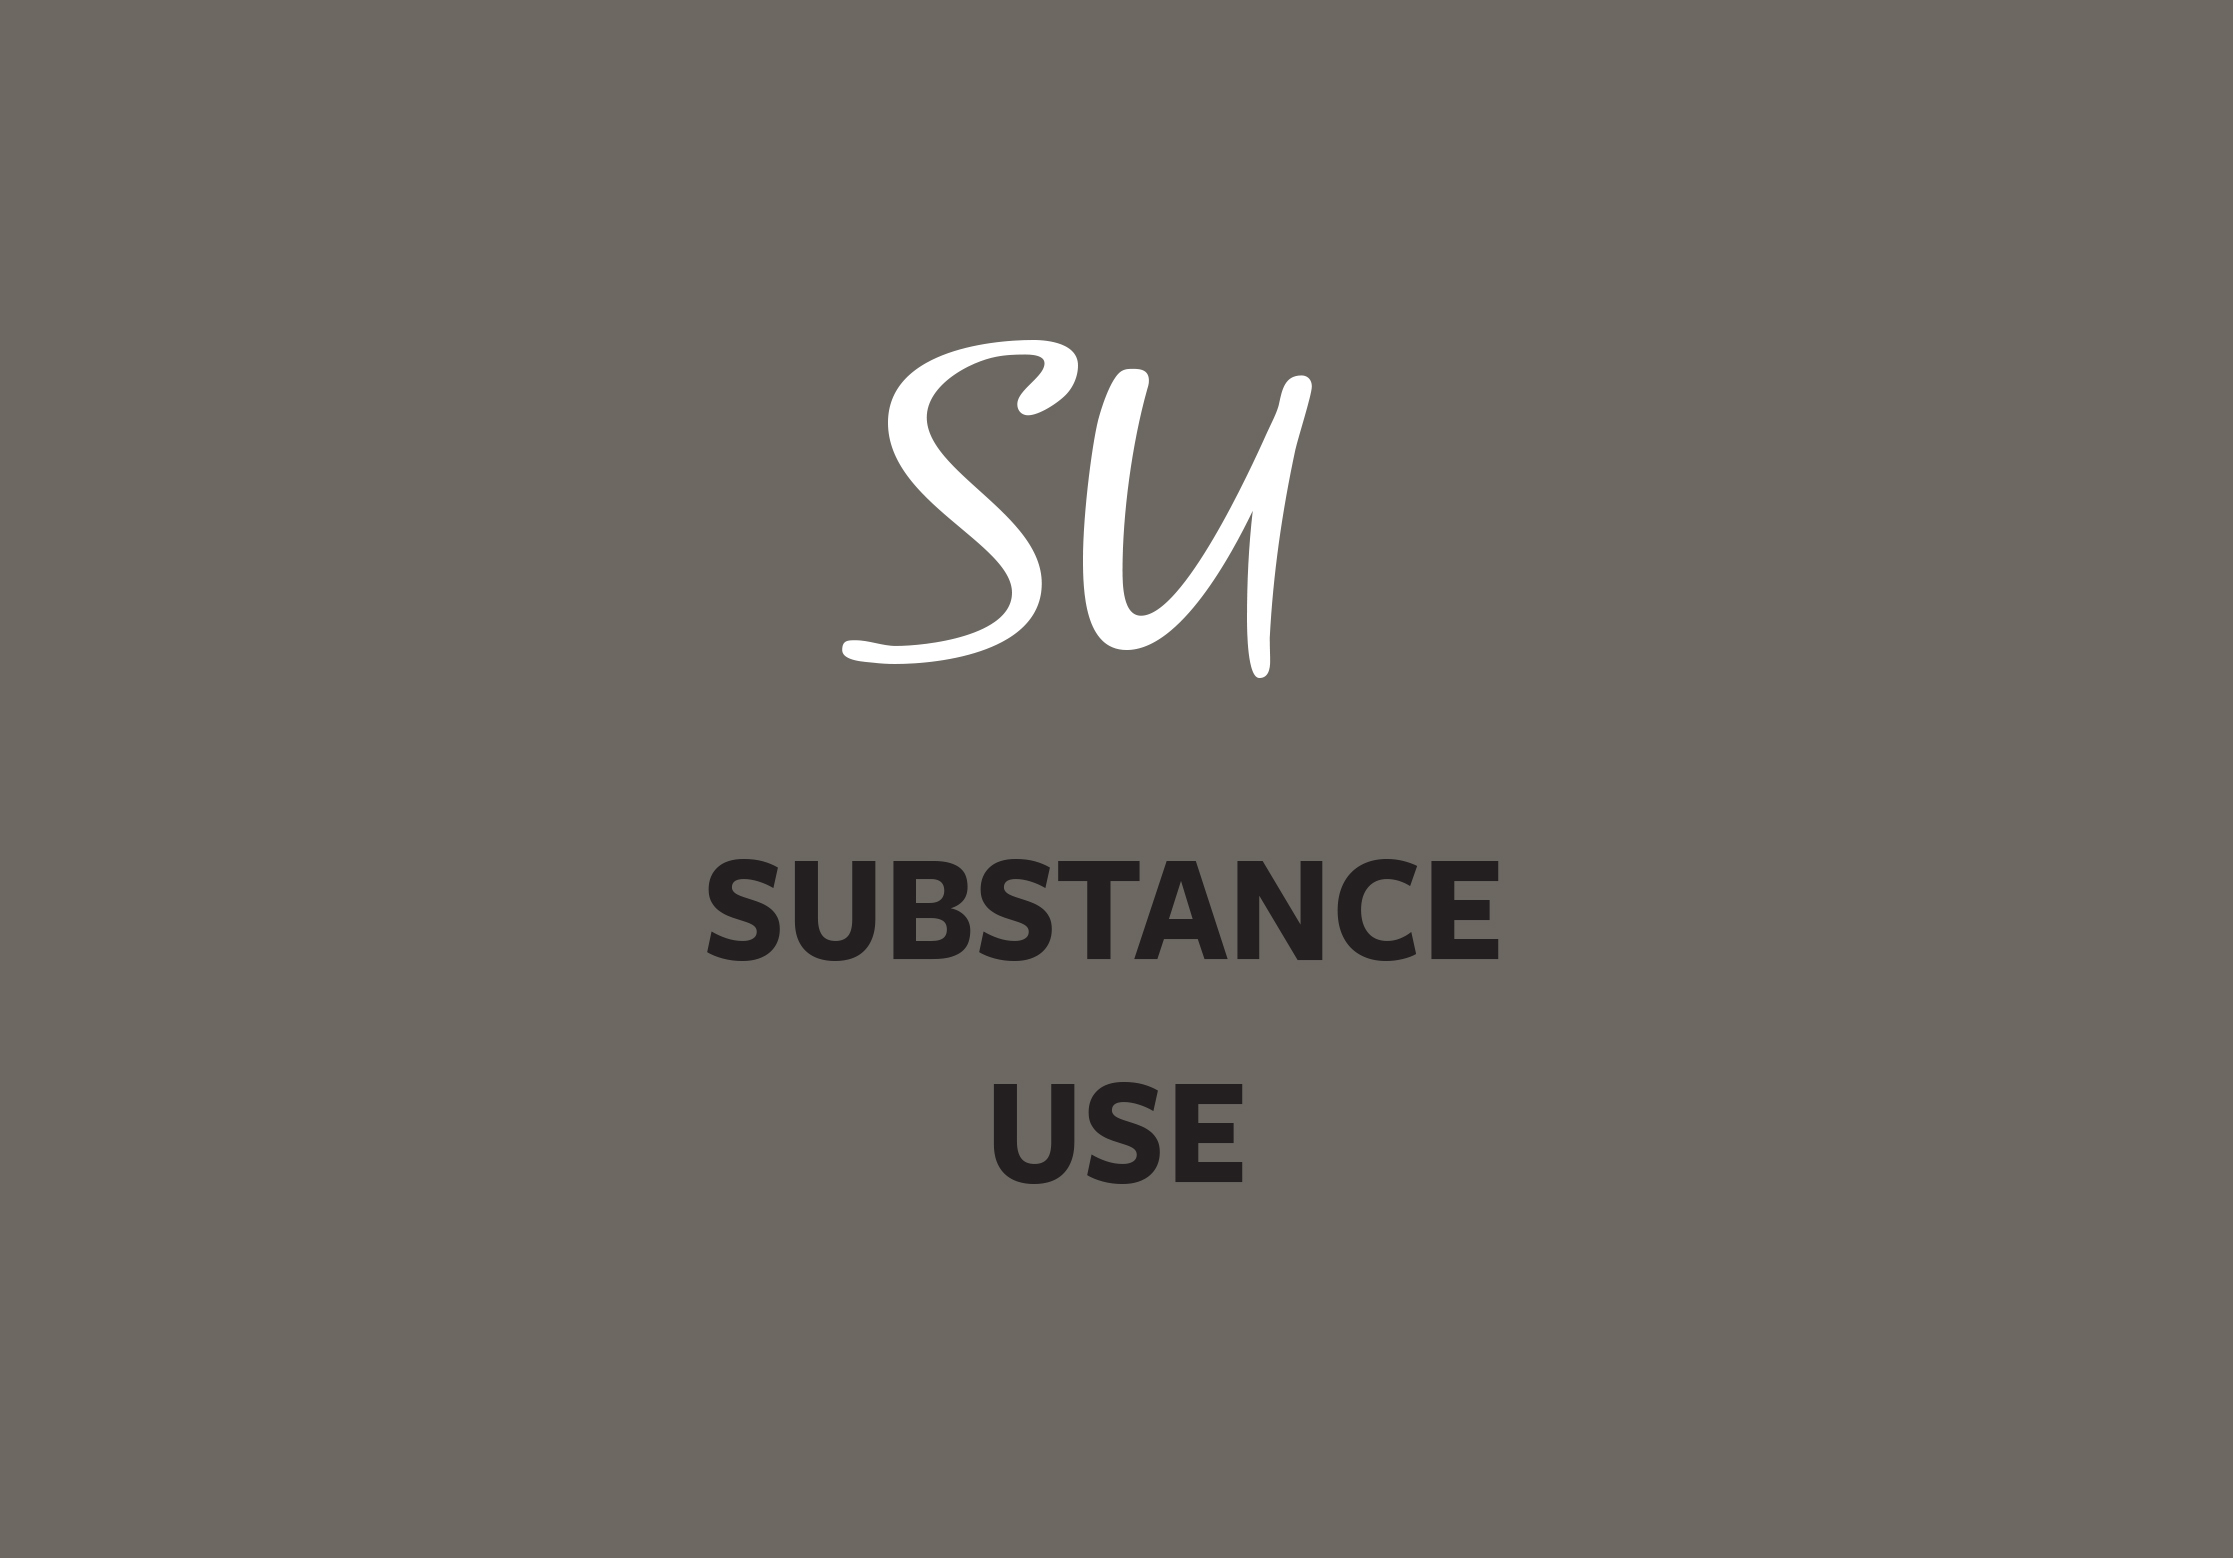 Link to Substance Use page